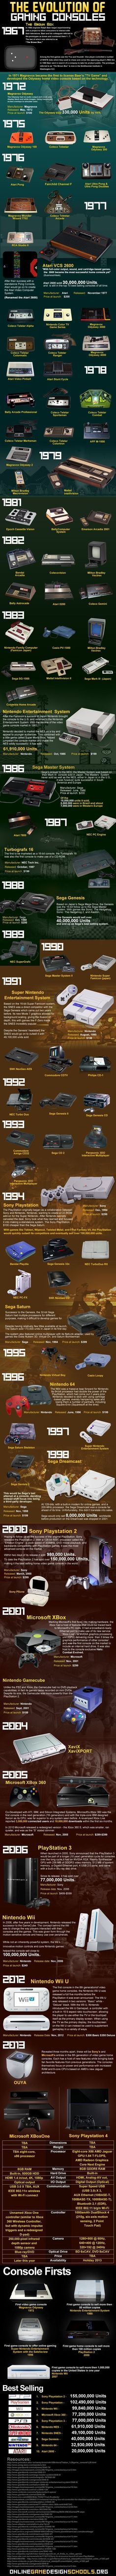 The Evolution of #gaming Consoles (1969 - 2013) This is cool!!